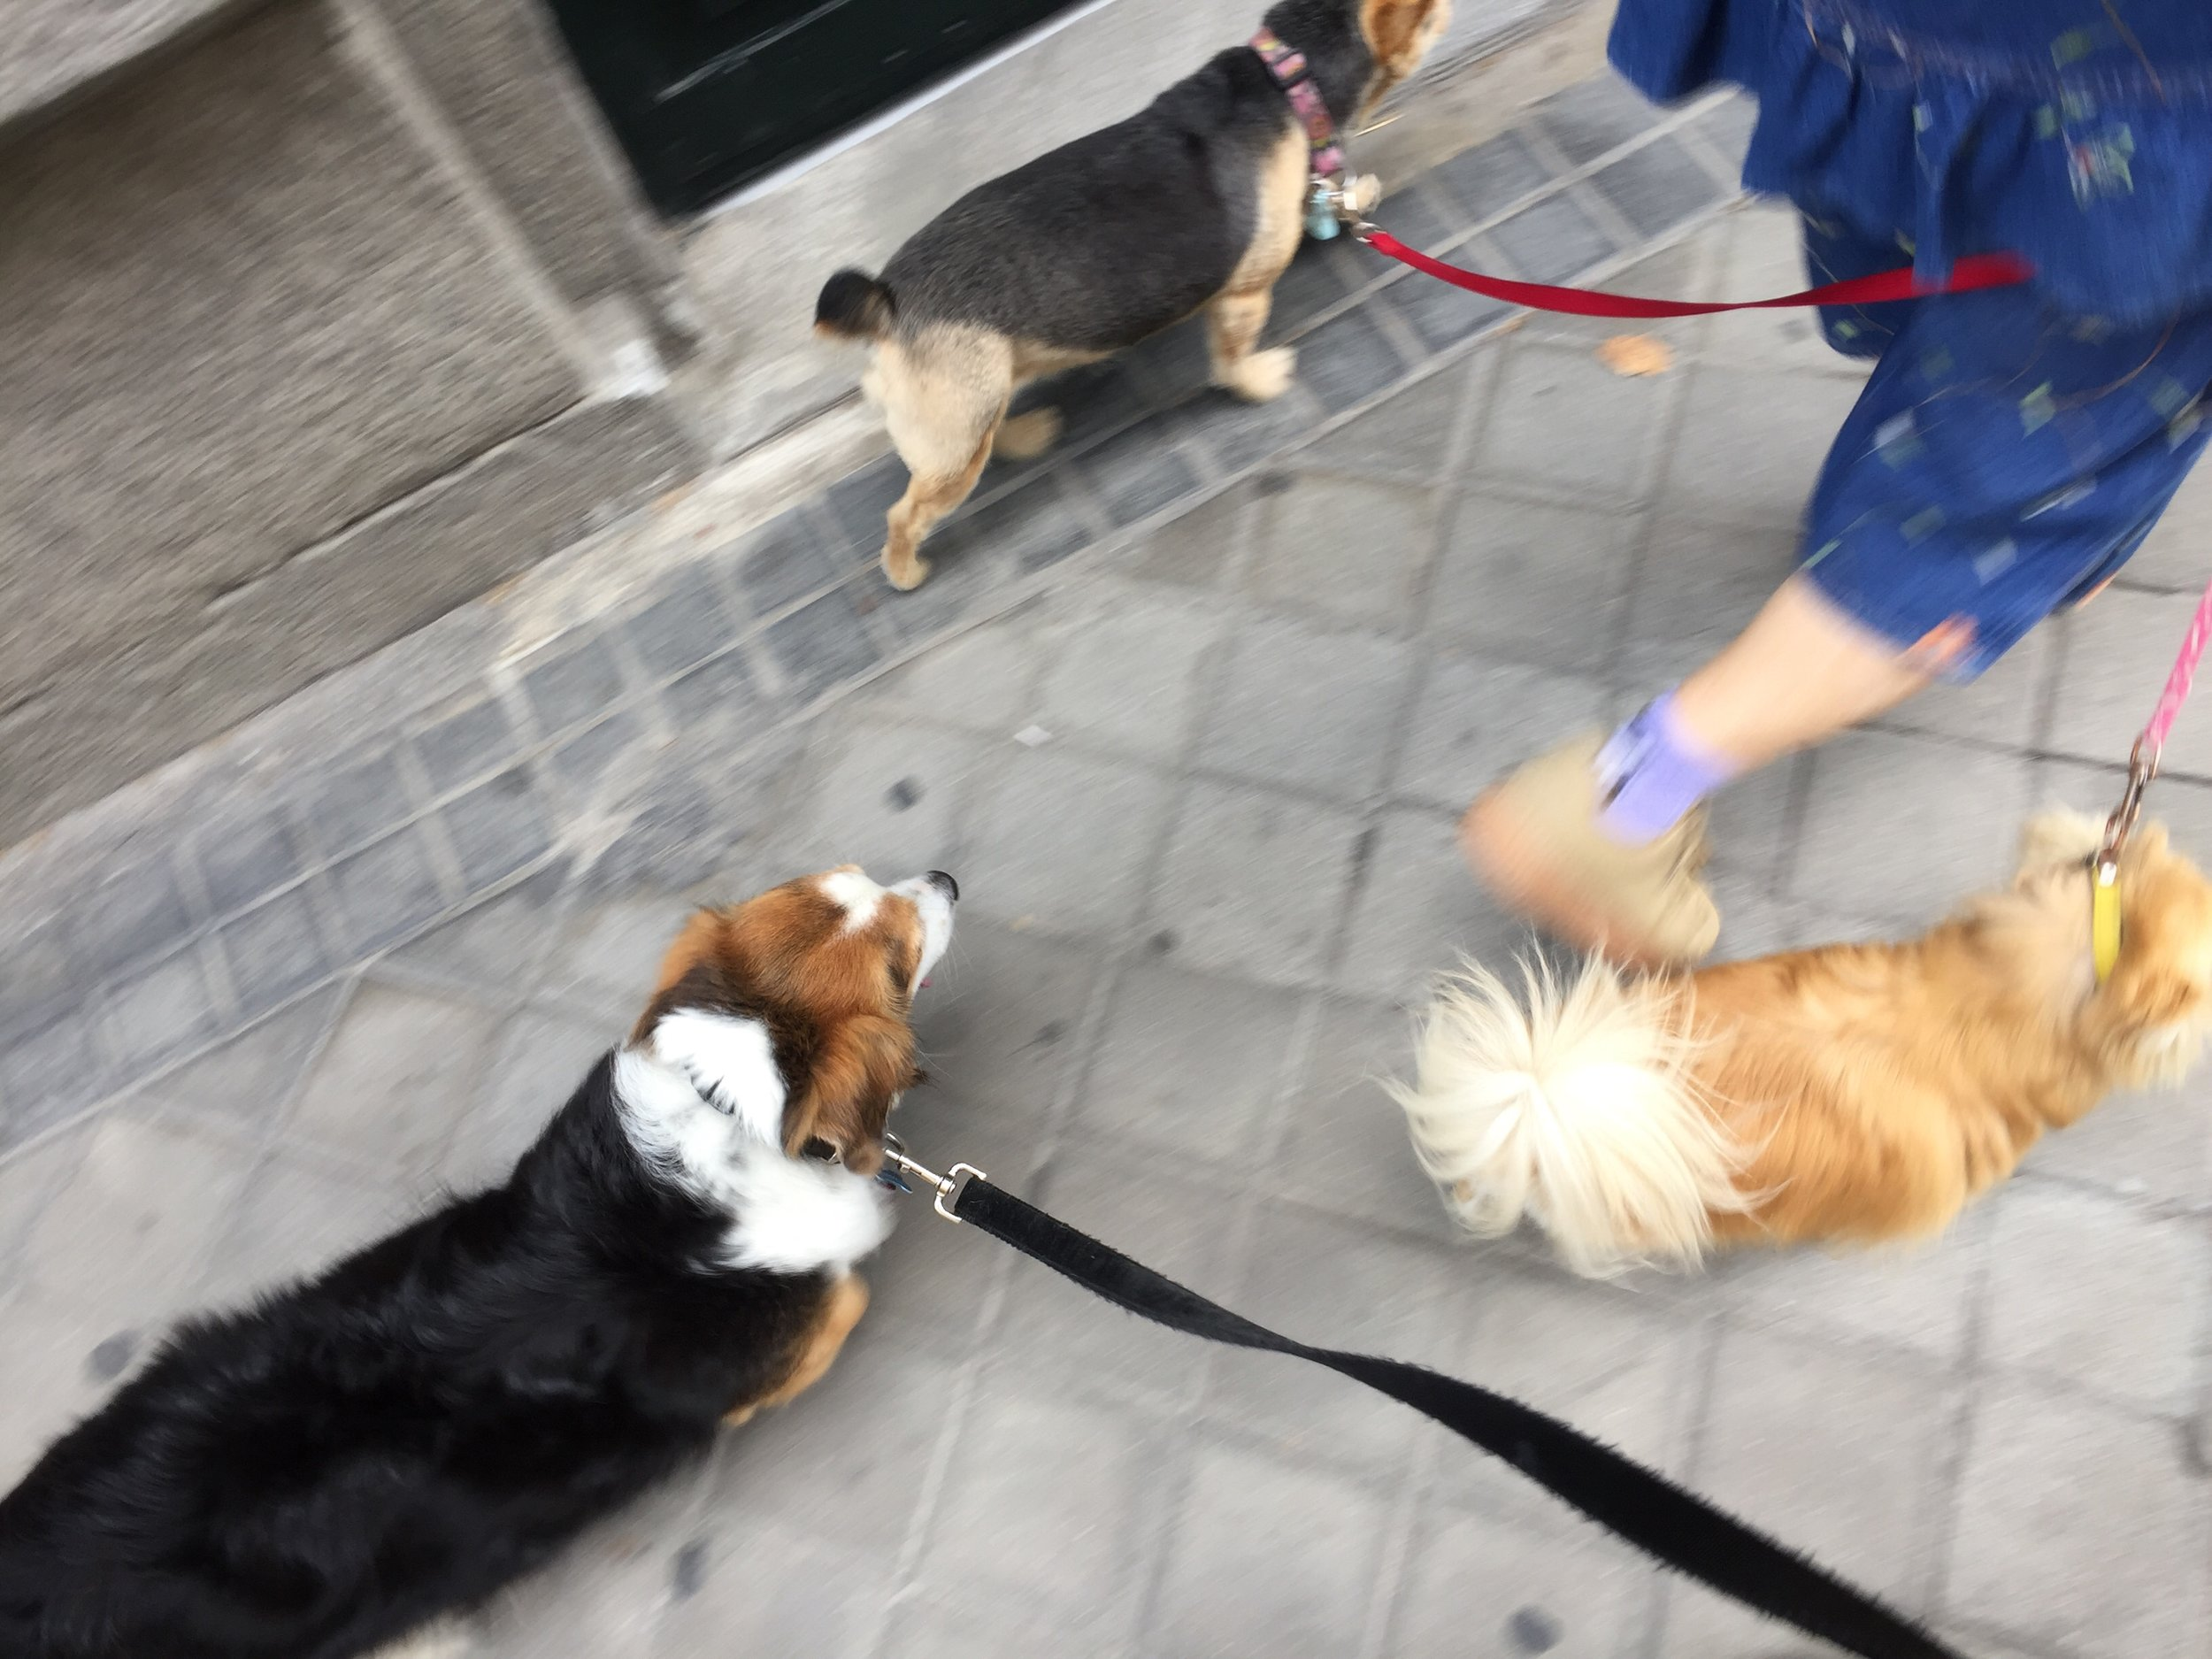 Lucía leads the pack